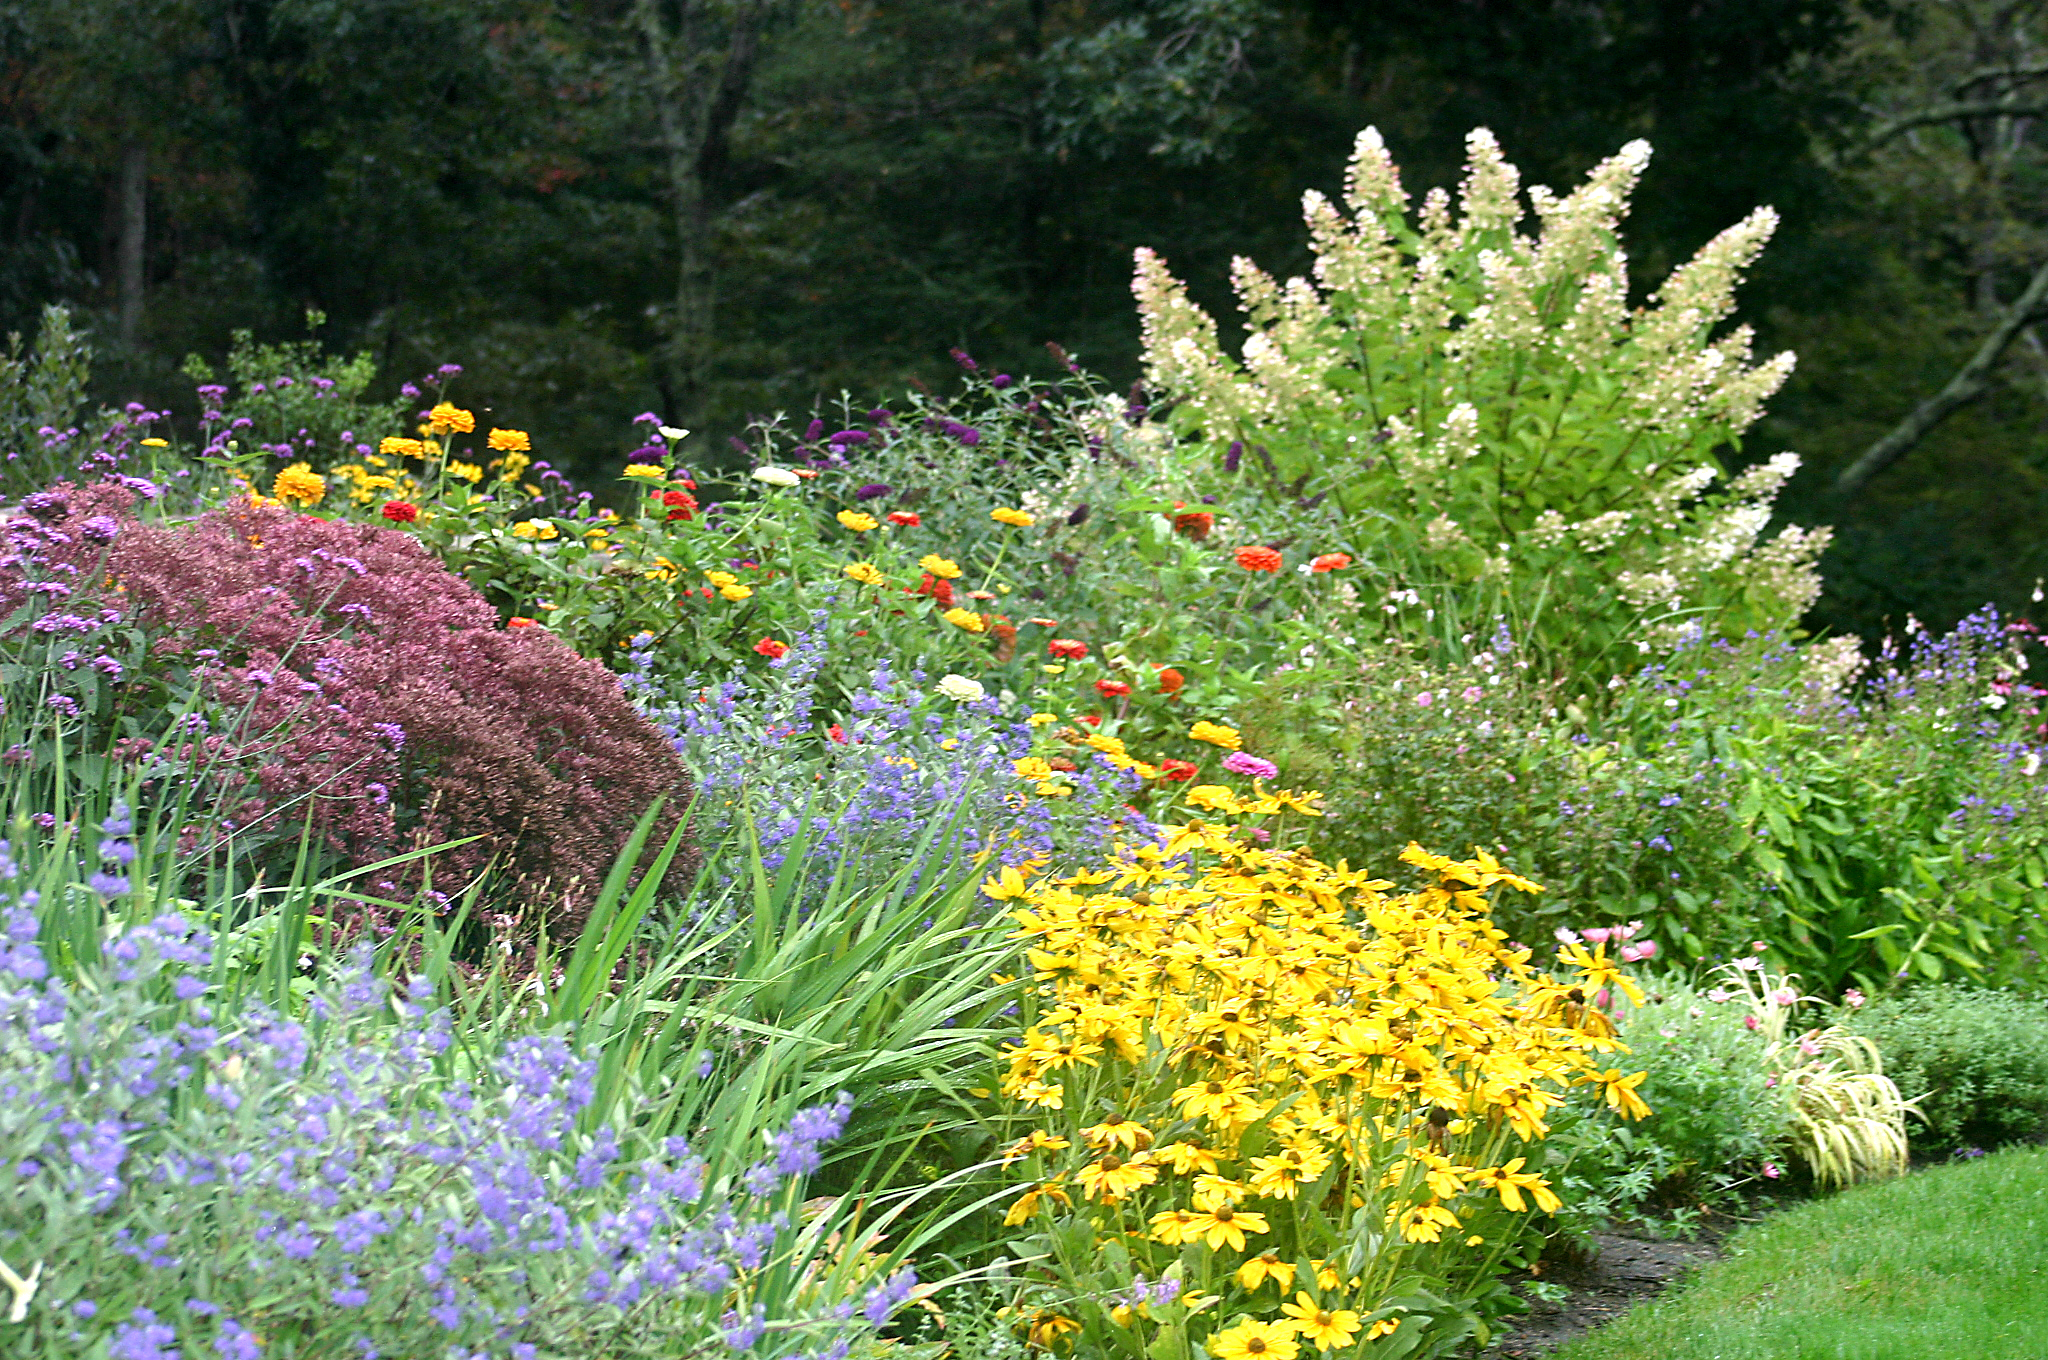 - Annuals, perennials, shrubs, and trees.